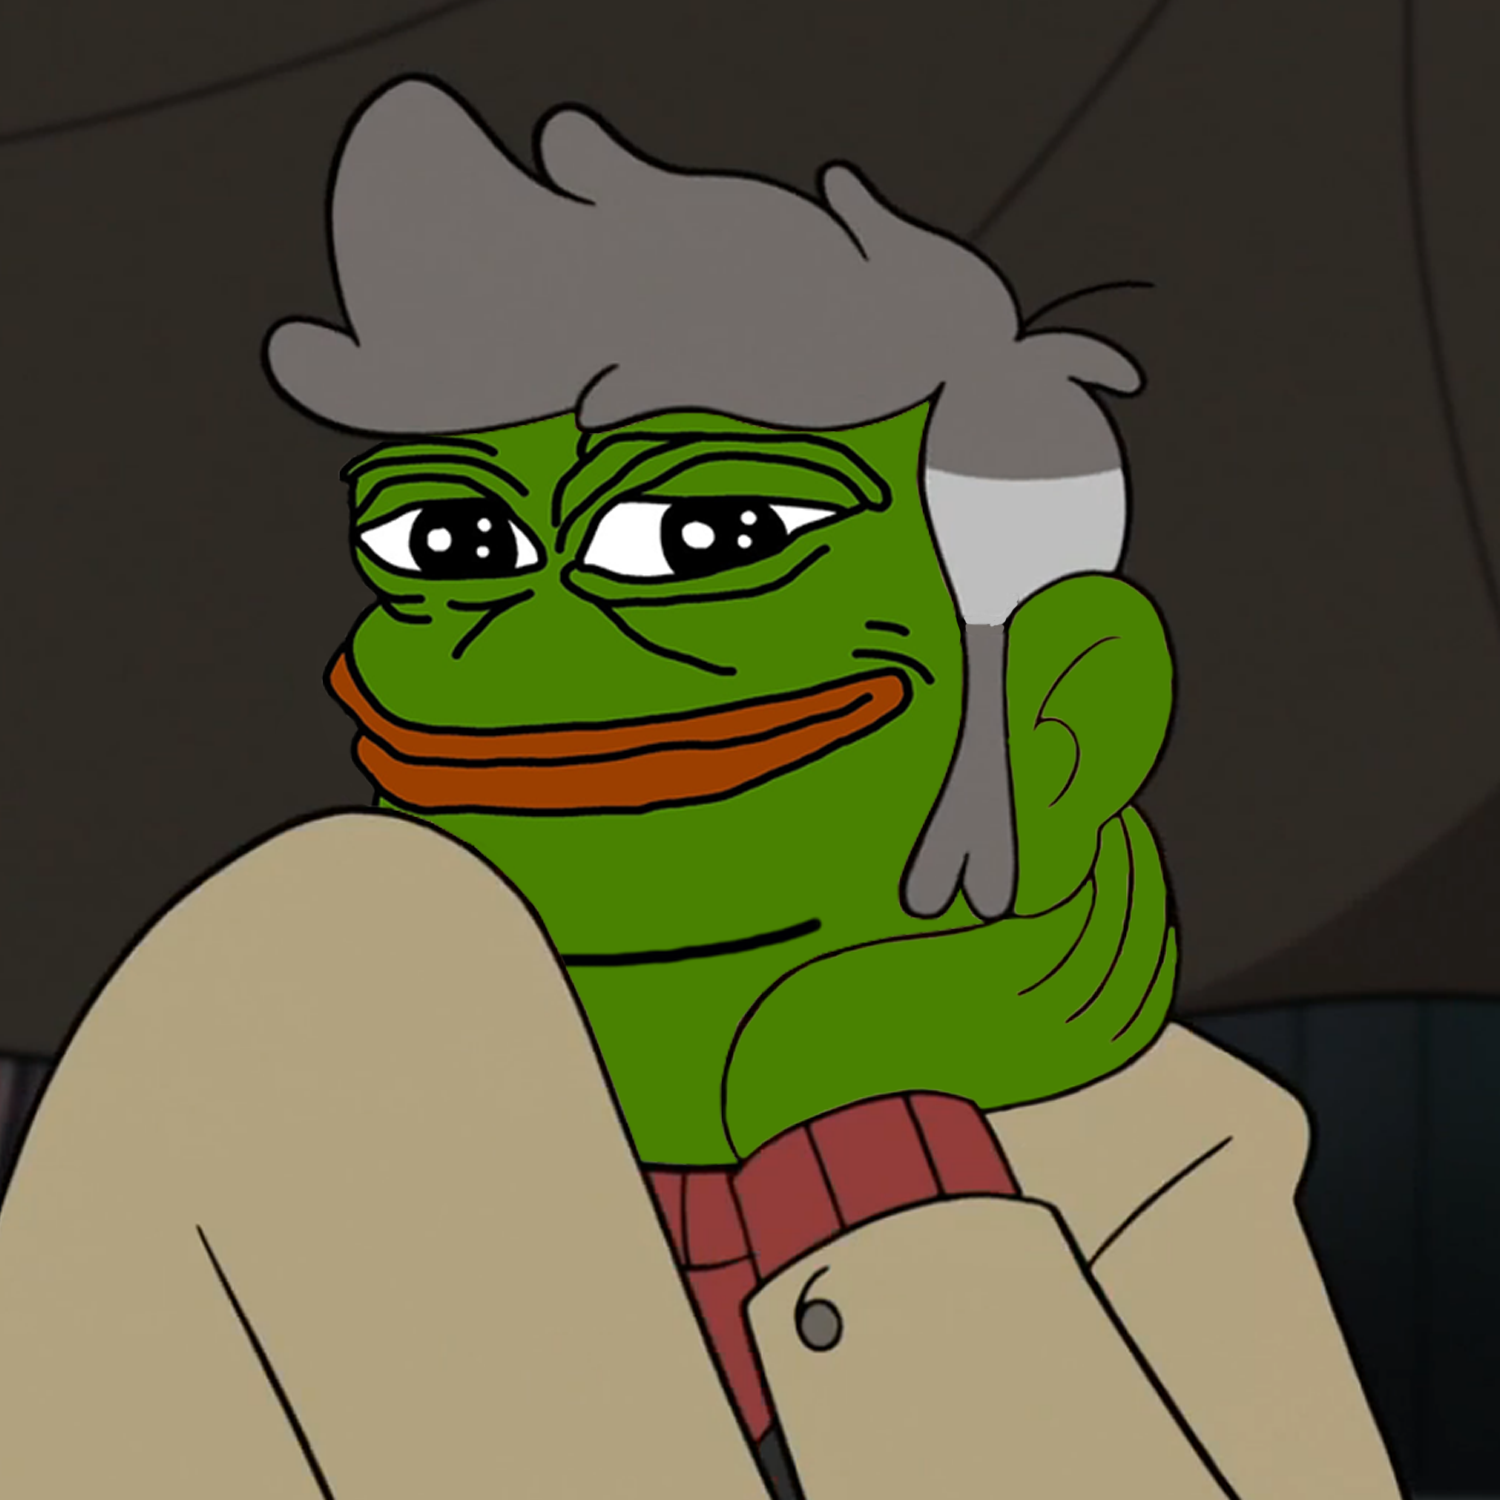 f1f unattainabelle pepe smug frog know your meme,Know Your Meme Pepe